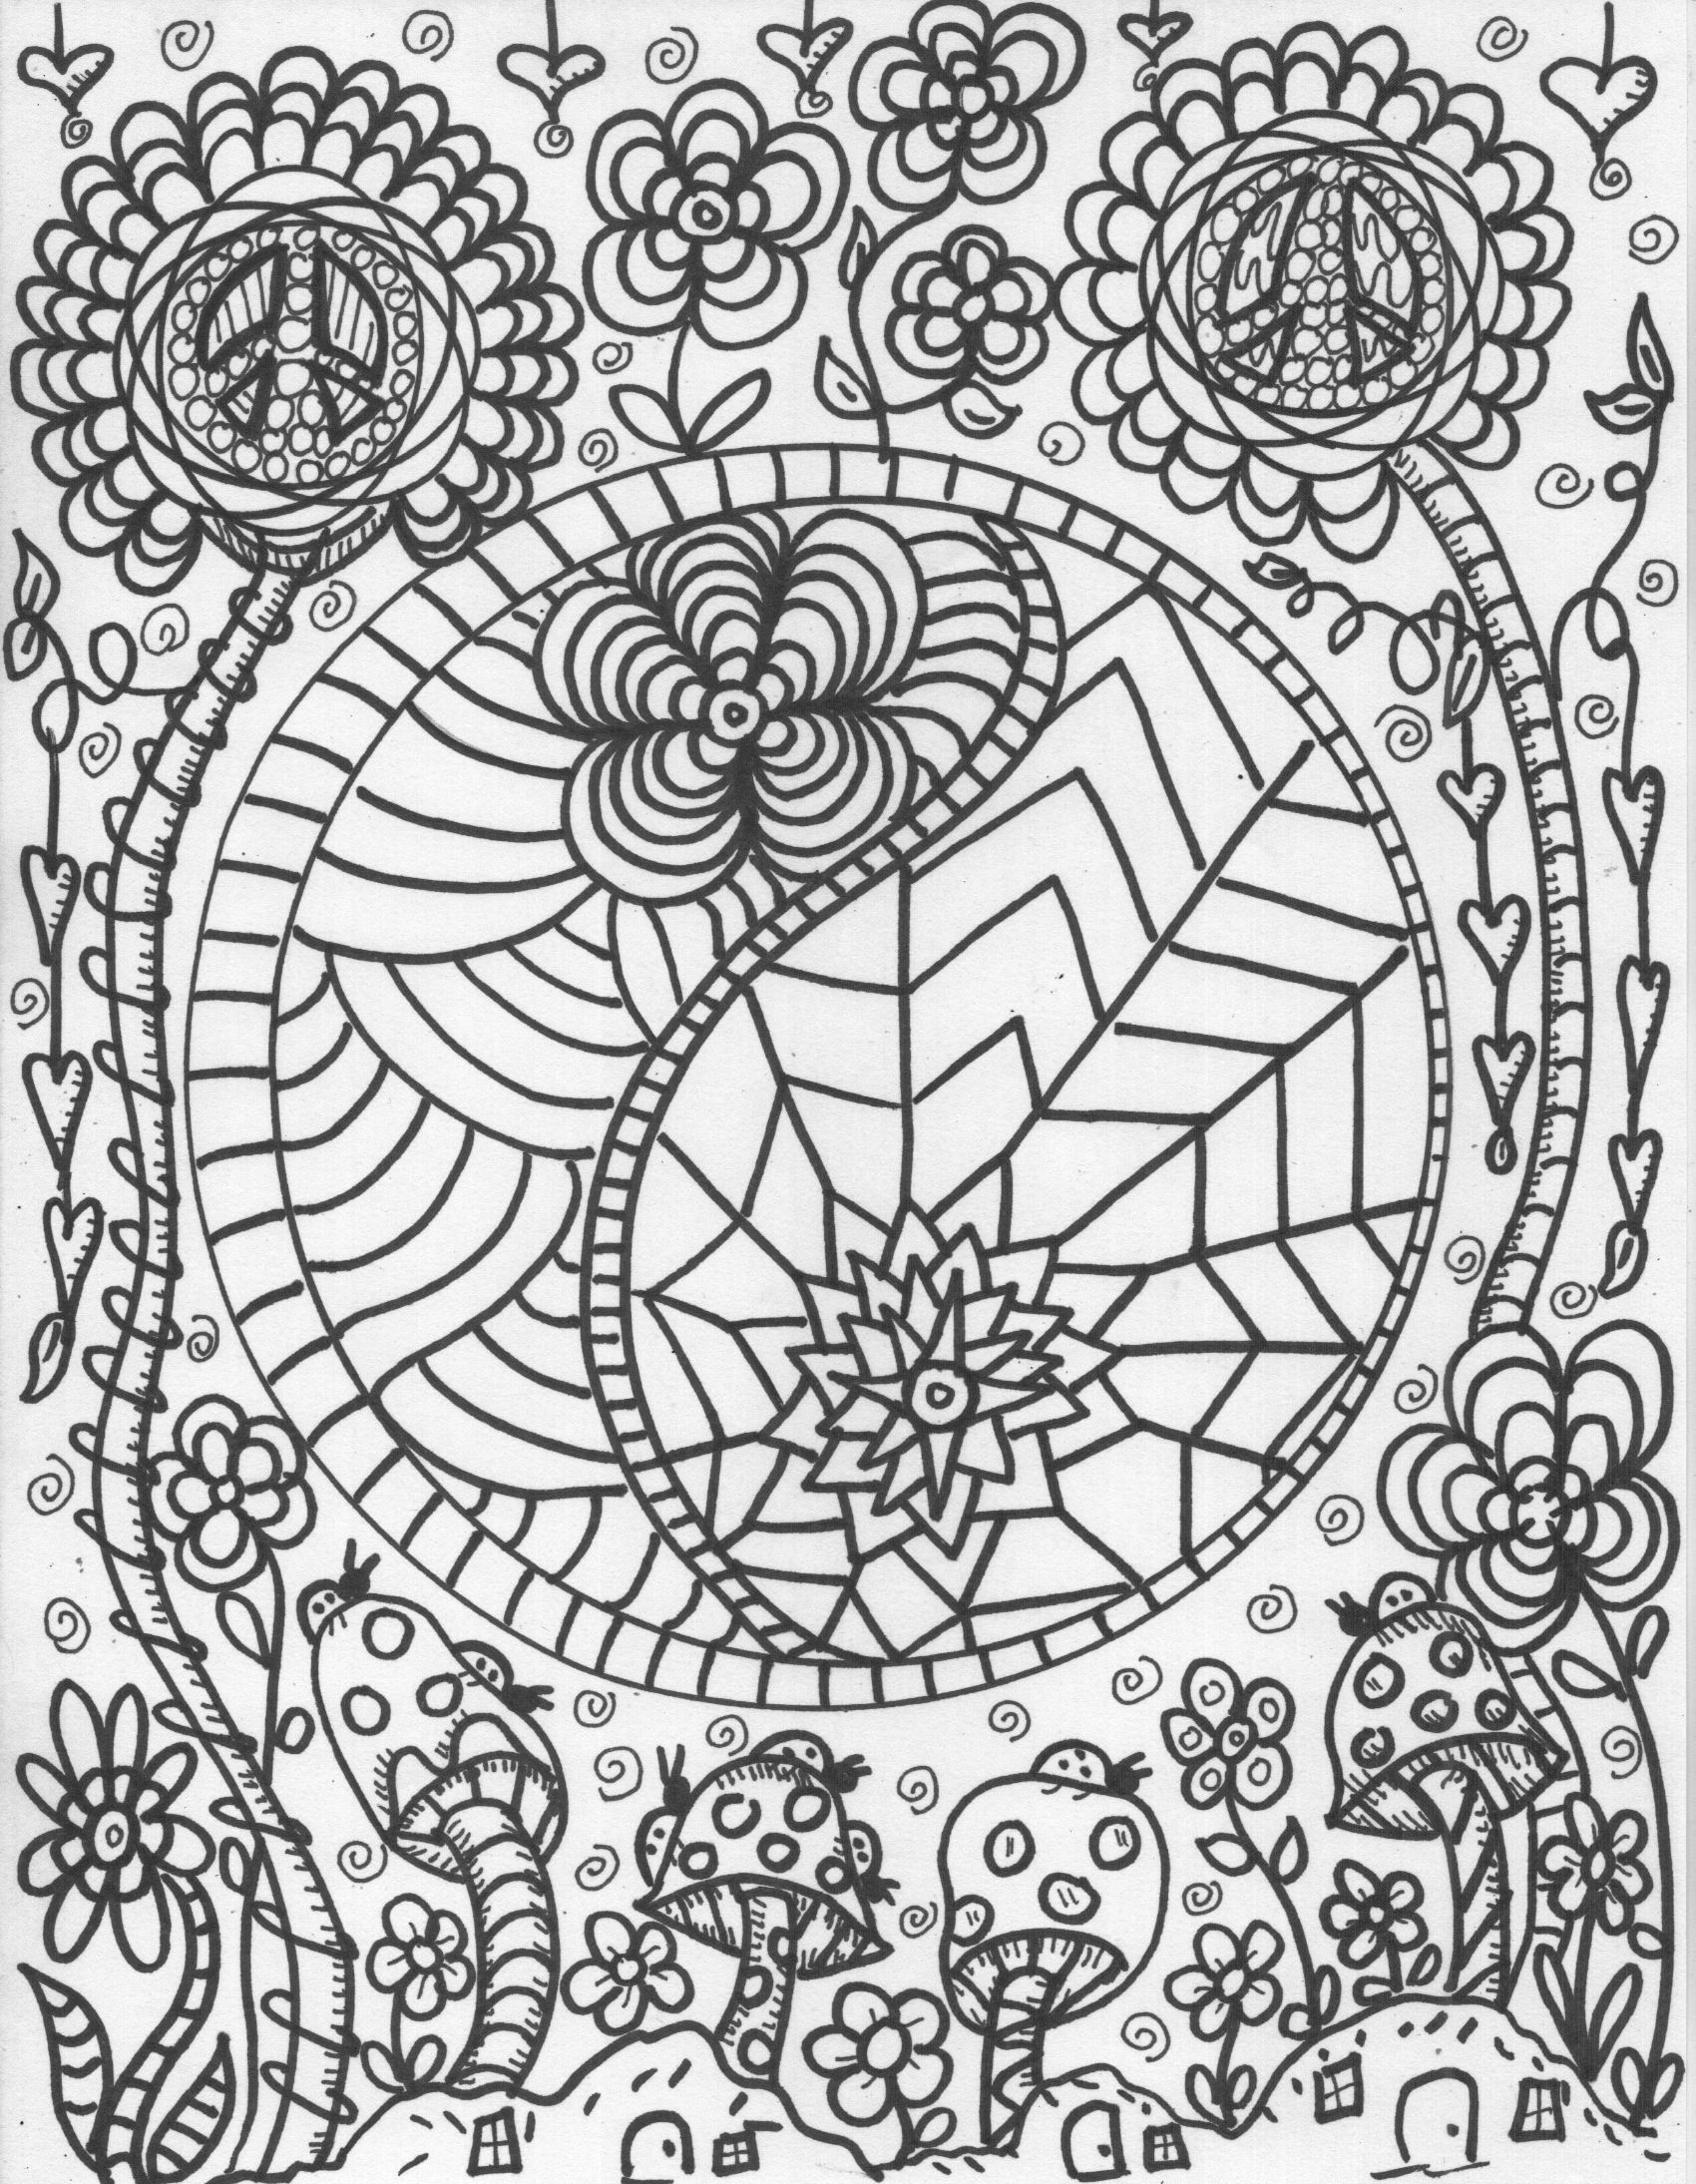 Coloring pages for adults zentangle - Abstract Doodle Zentangle Coloring Pages Colouring Adult Detailed Advanced Printable Kleuren Voor Volwassenen Coloriage Pour Adulte